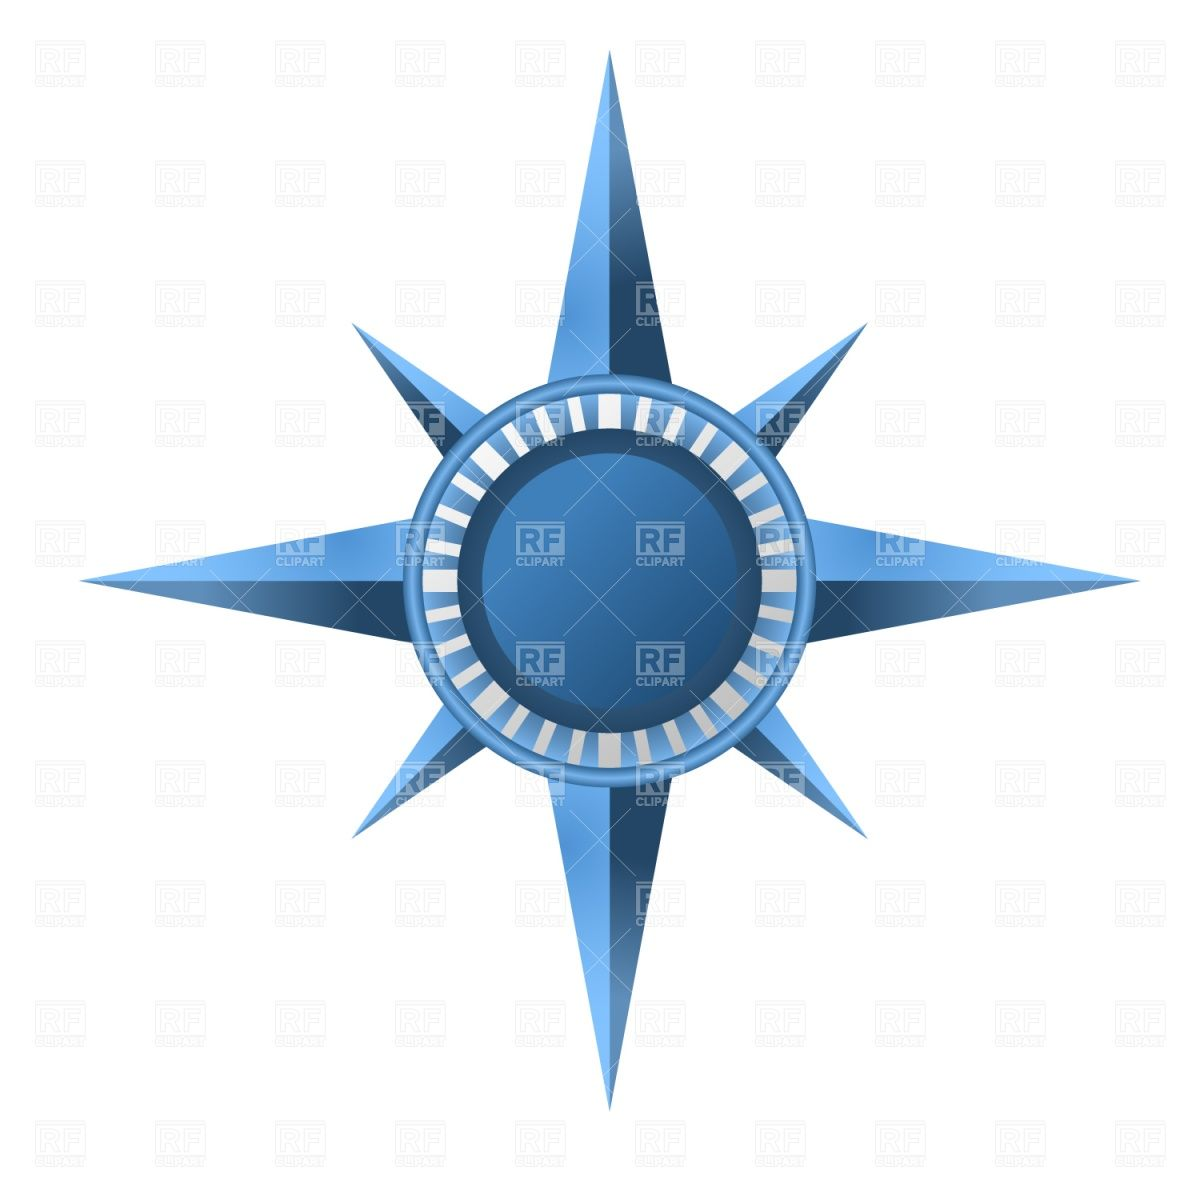 Blue compass rose clipart jpg freeuse library Compass Rose Clipart | ClipArtHut - Free Clipart | Compass Rose ... jpg freeuse library